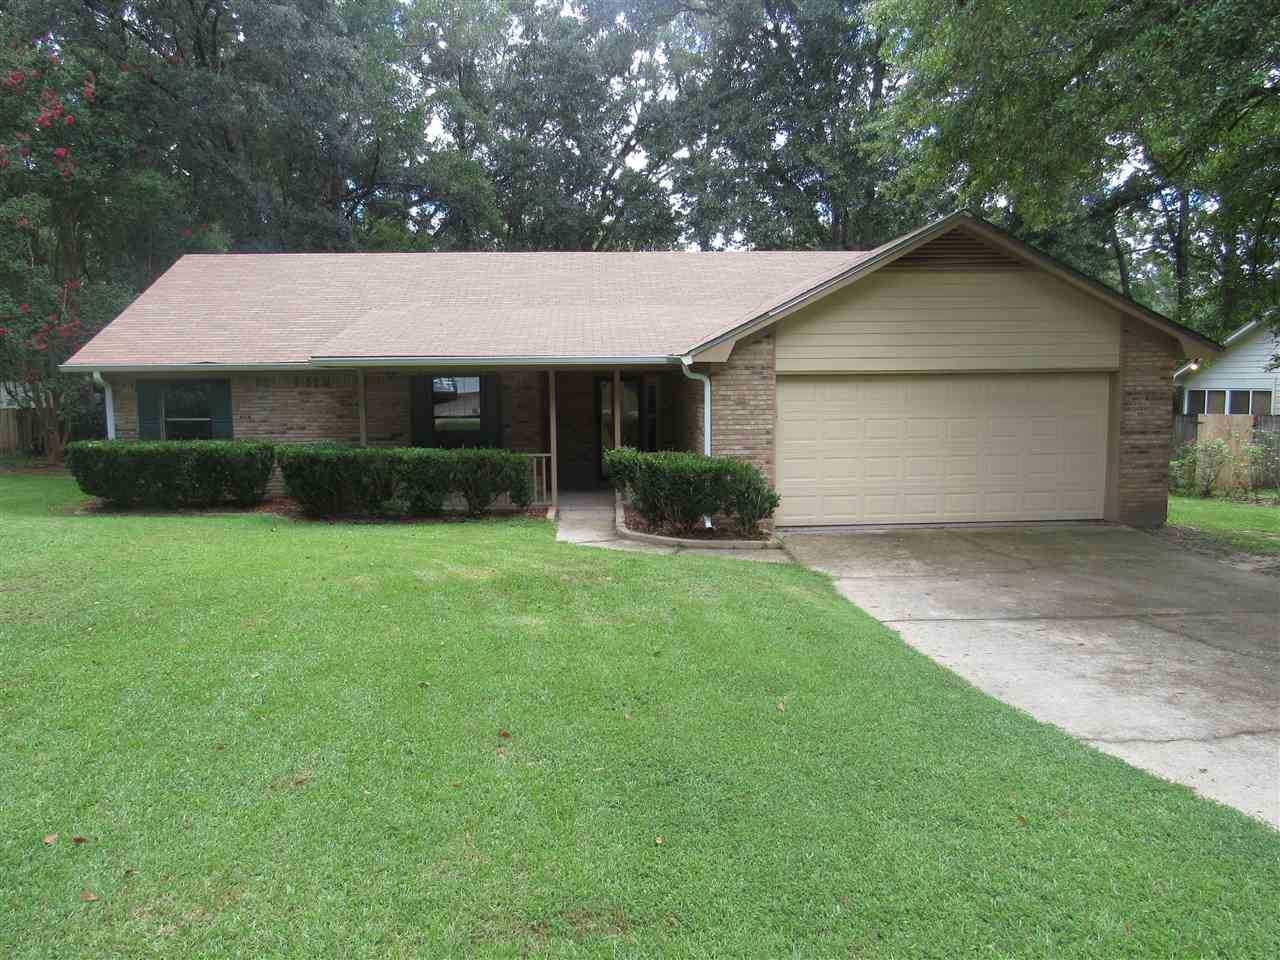 1349 W Blockford Court Tallahassee, FL 32317 in Avondale Photo 1